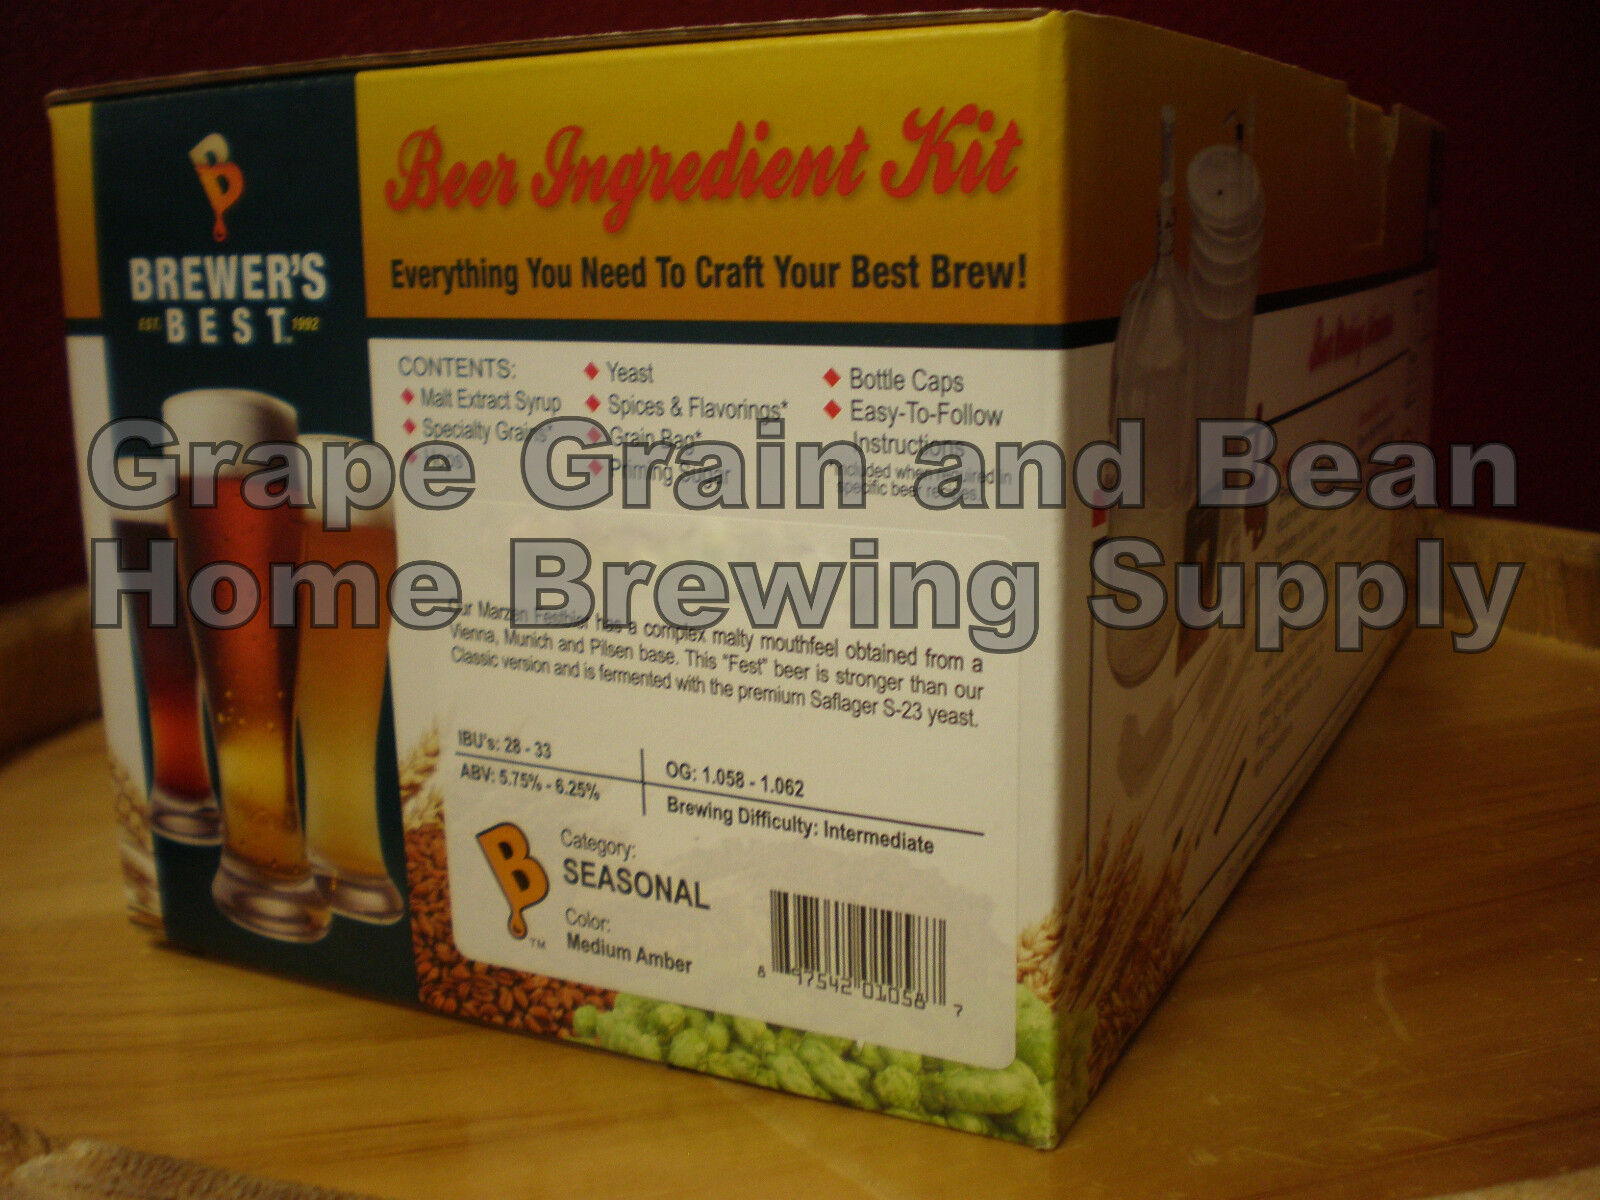 $40.95 - Brewers Best Toasted Coconut Cream Ale Beer Making Kit, Brewing Kit